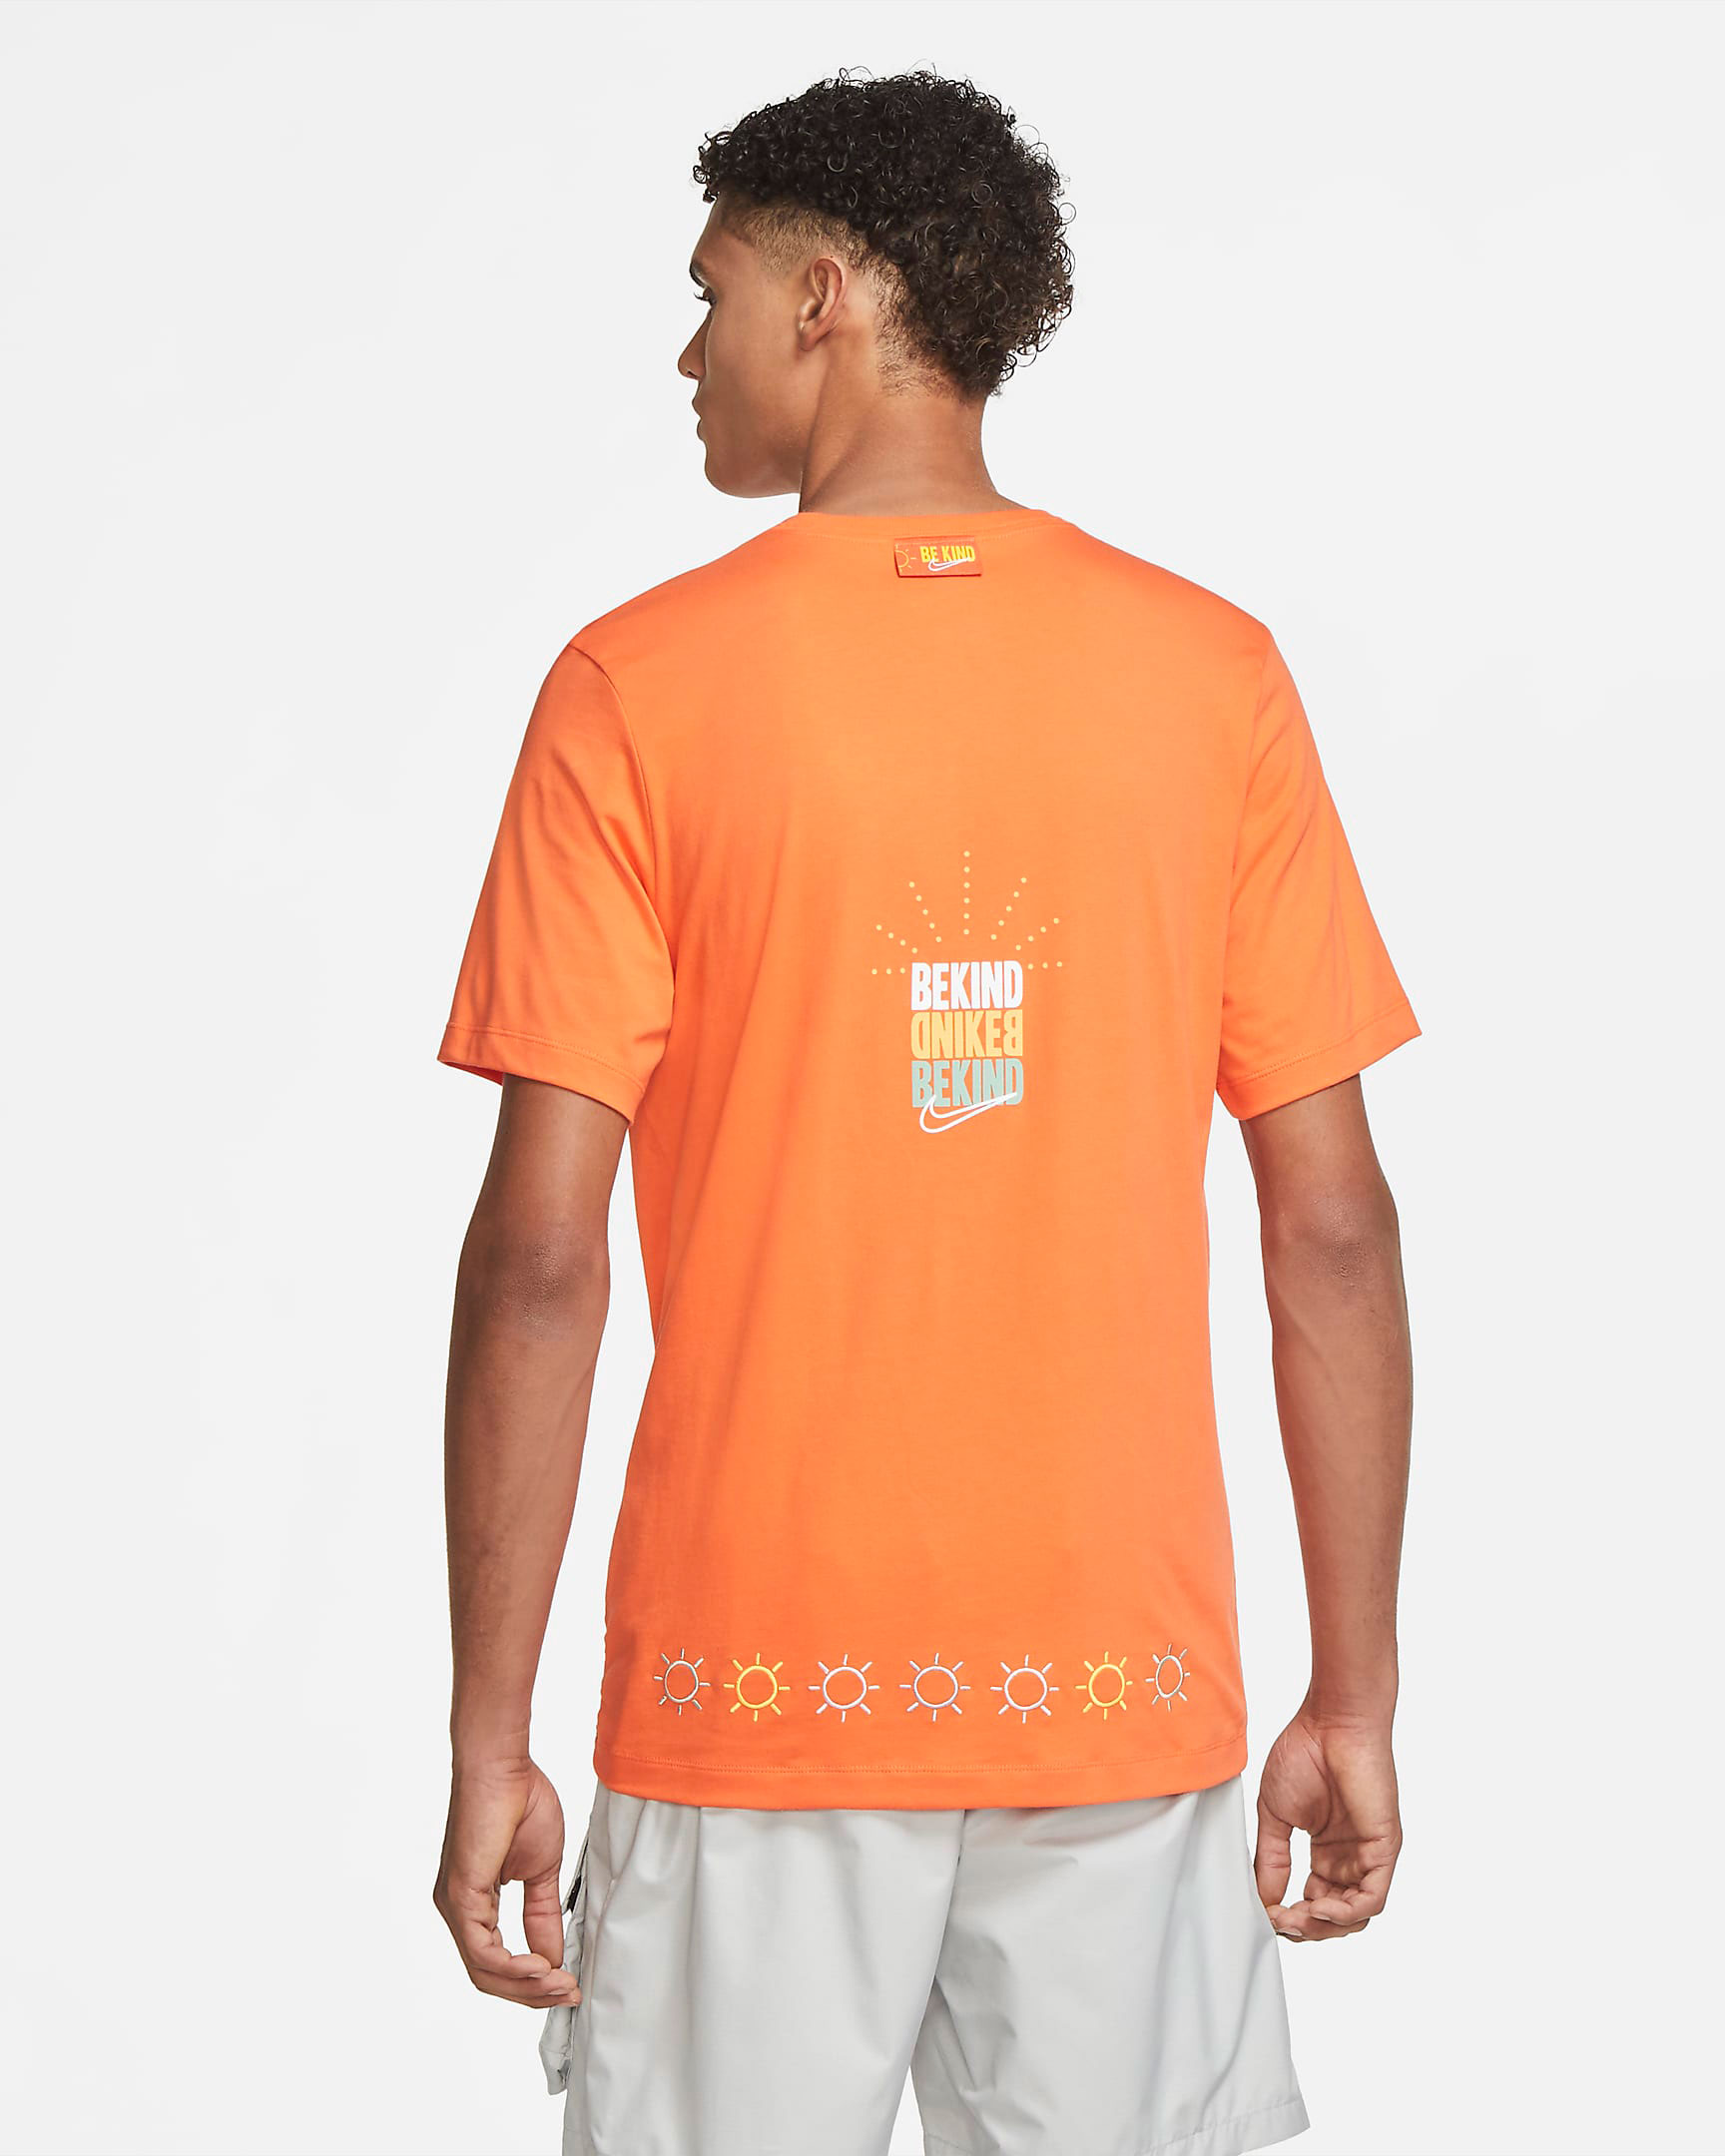 nike-sportswear-be-kind-orange-shirt-2